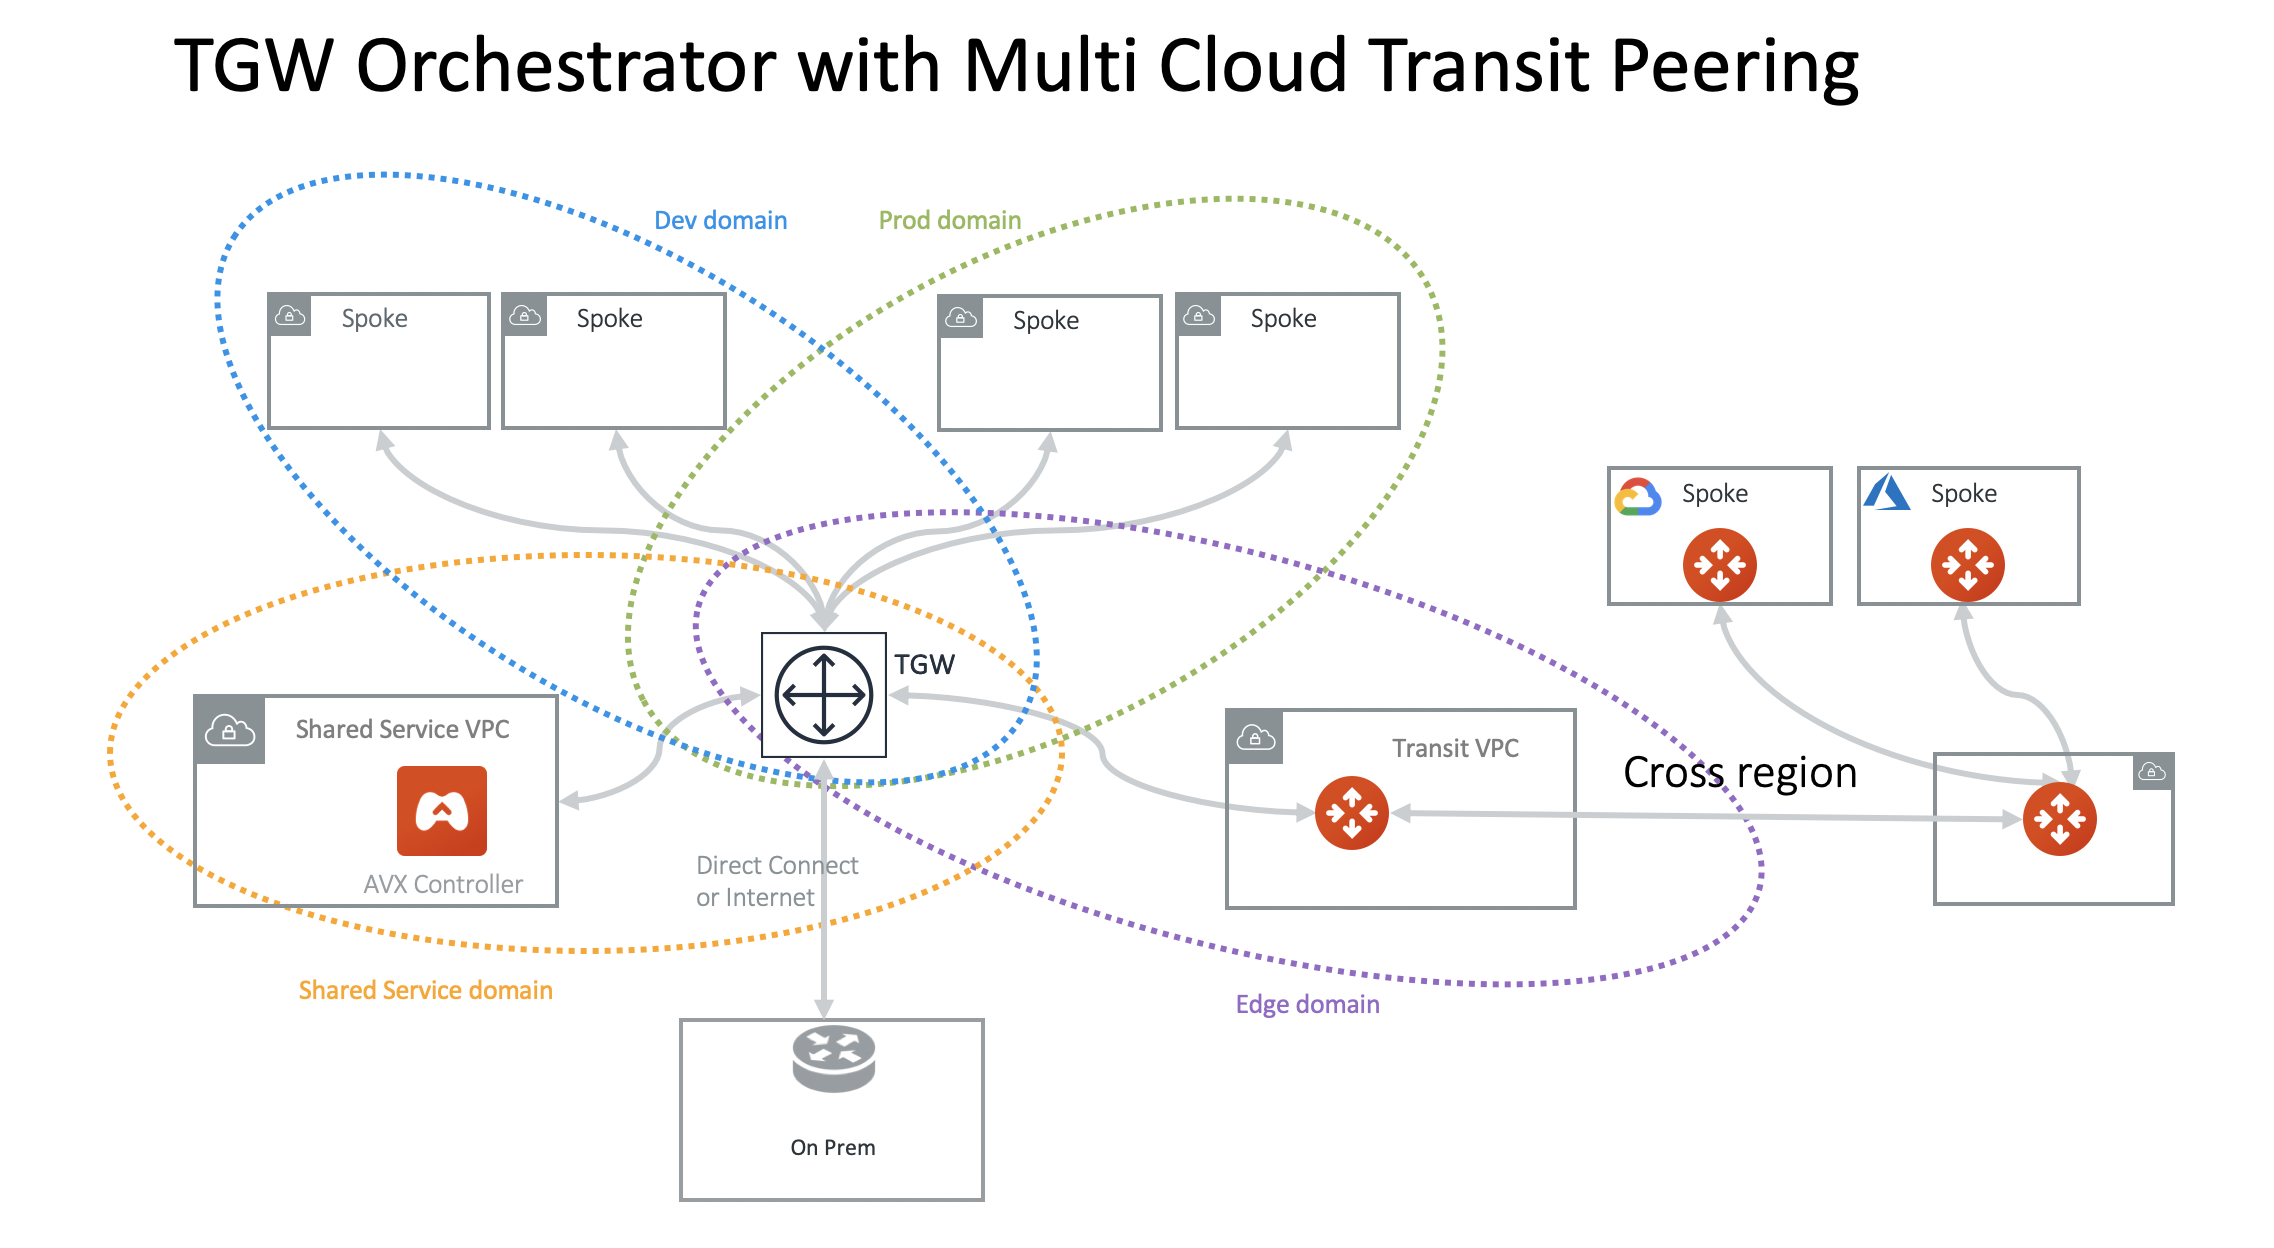 multi_cloud_transit_peering